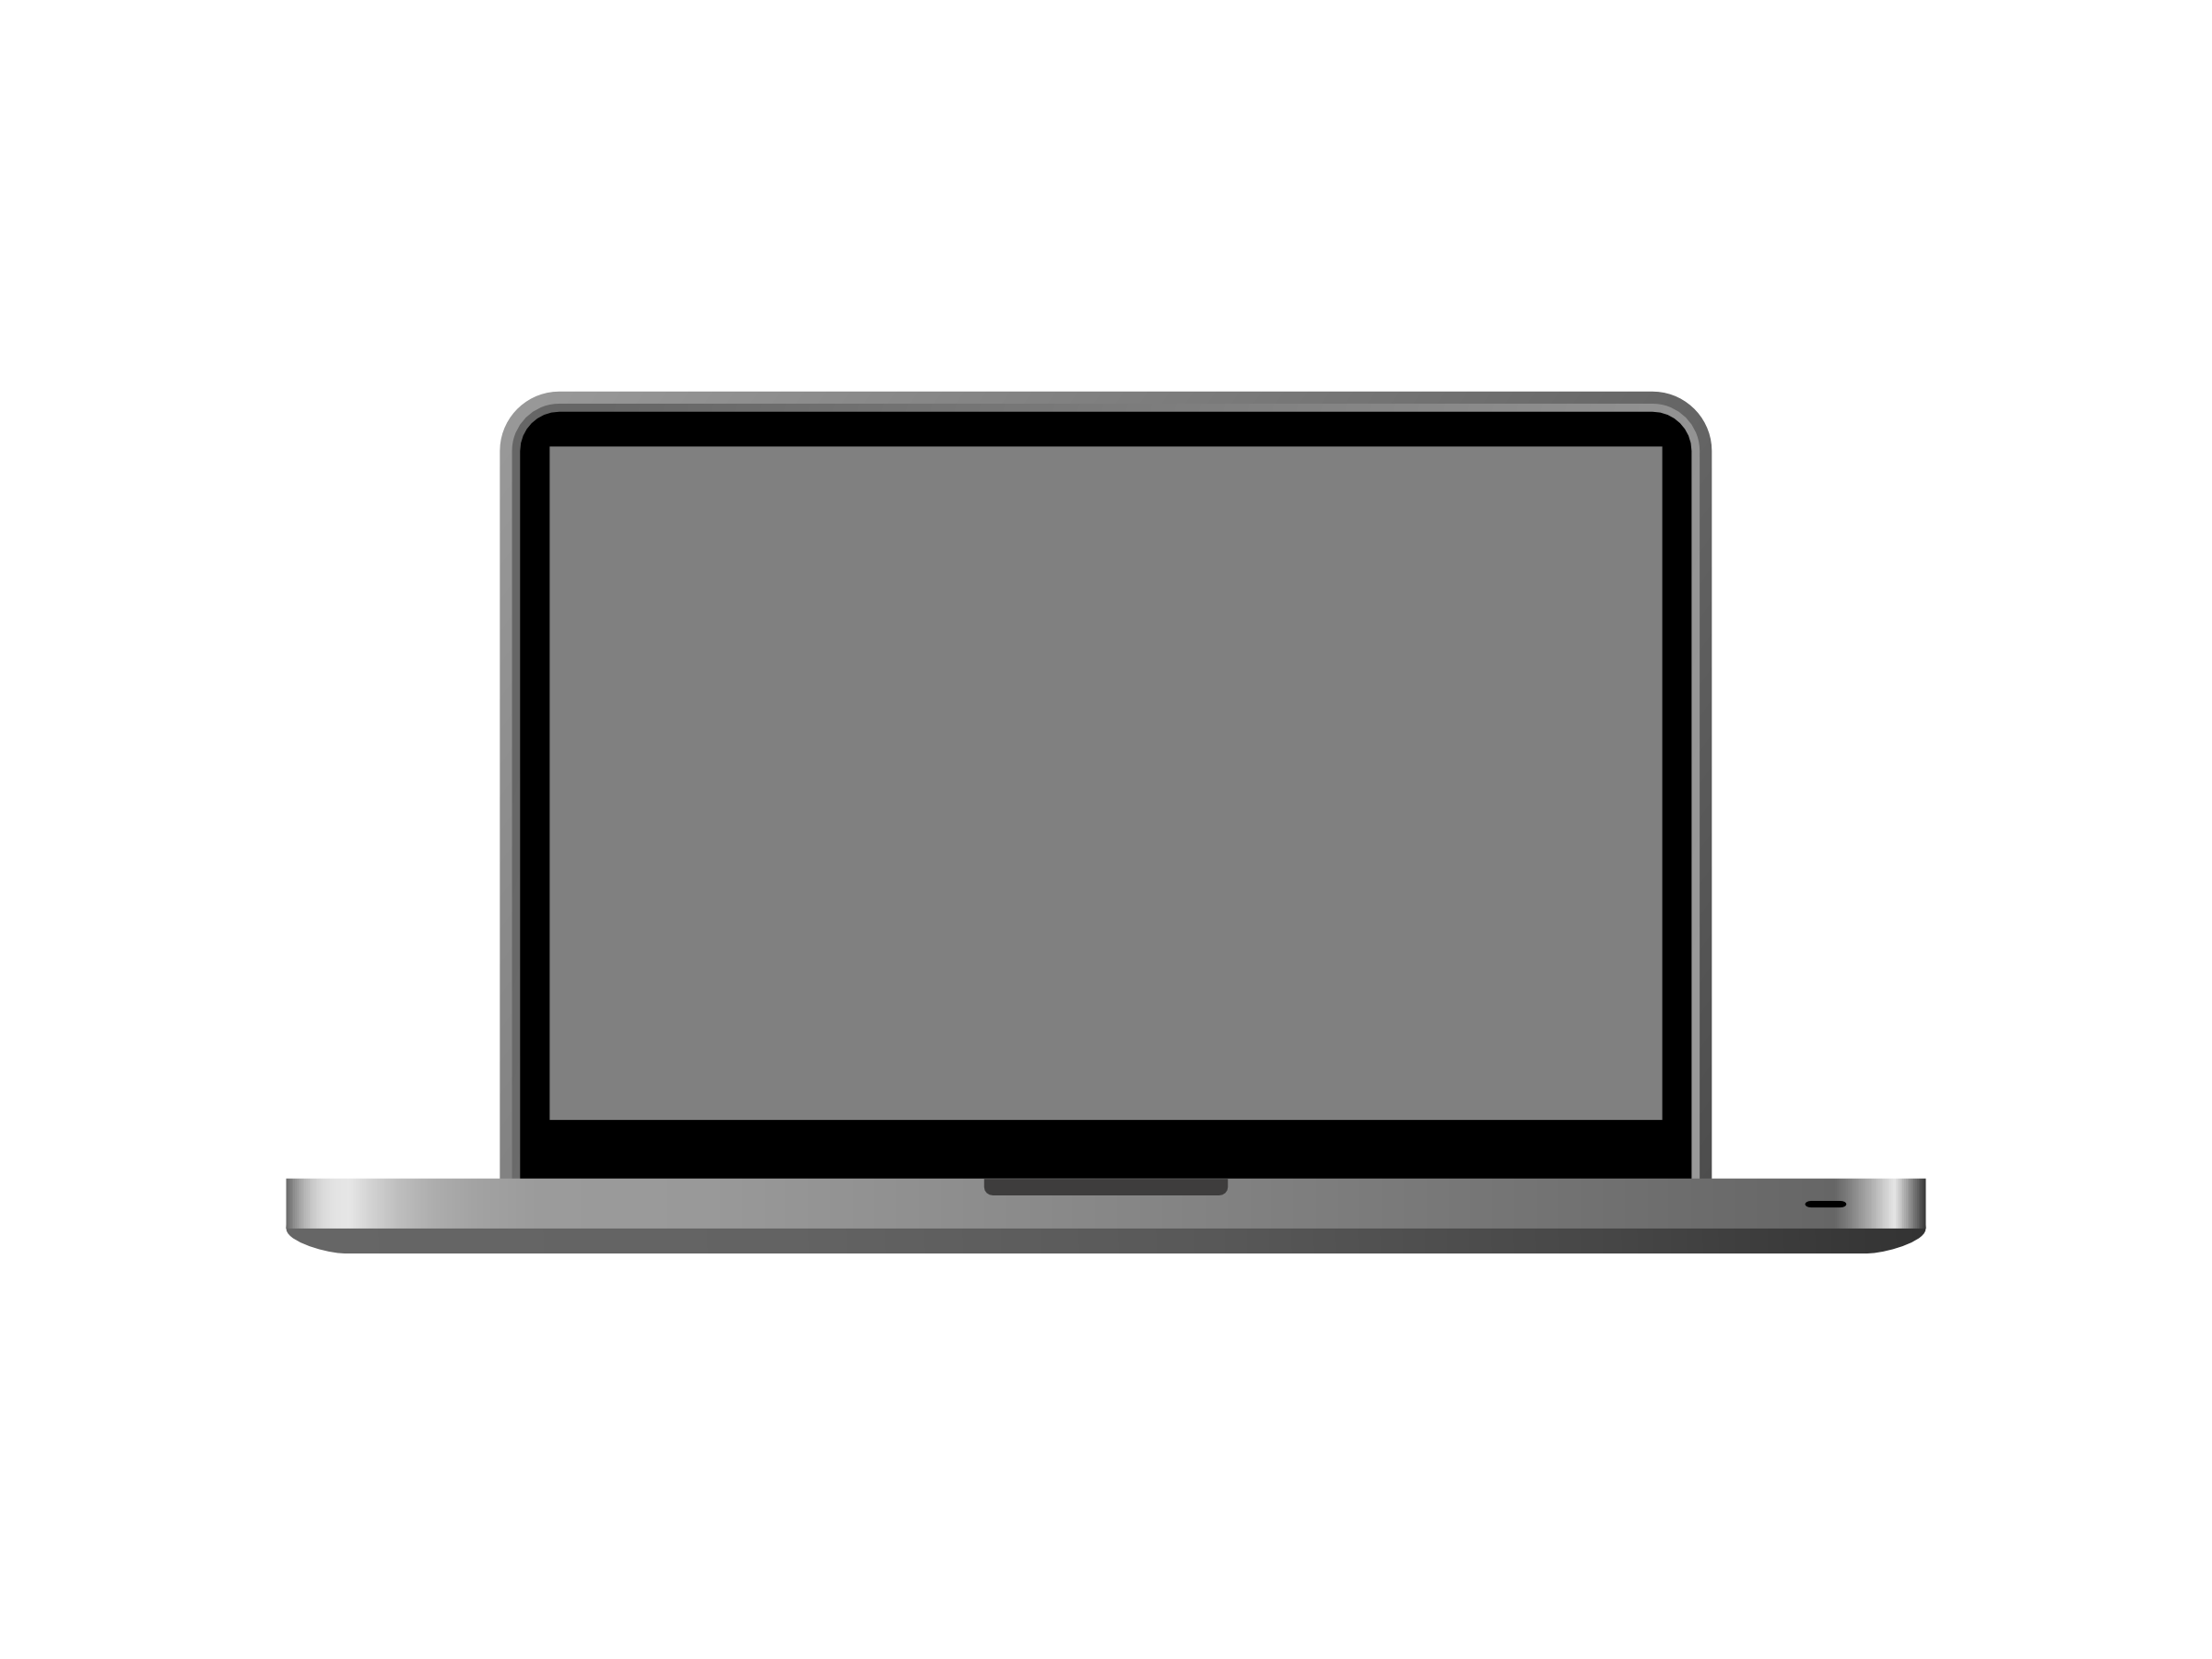 clipart for mac free downloads - photo #44